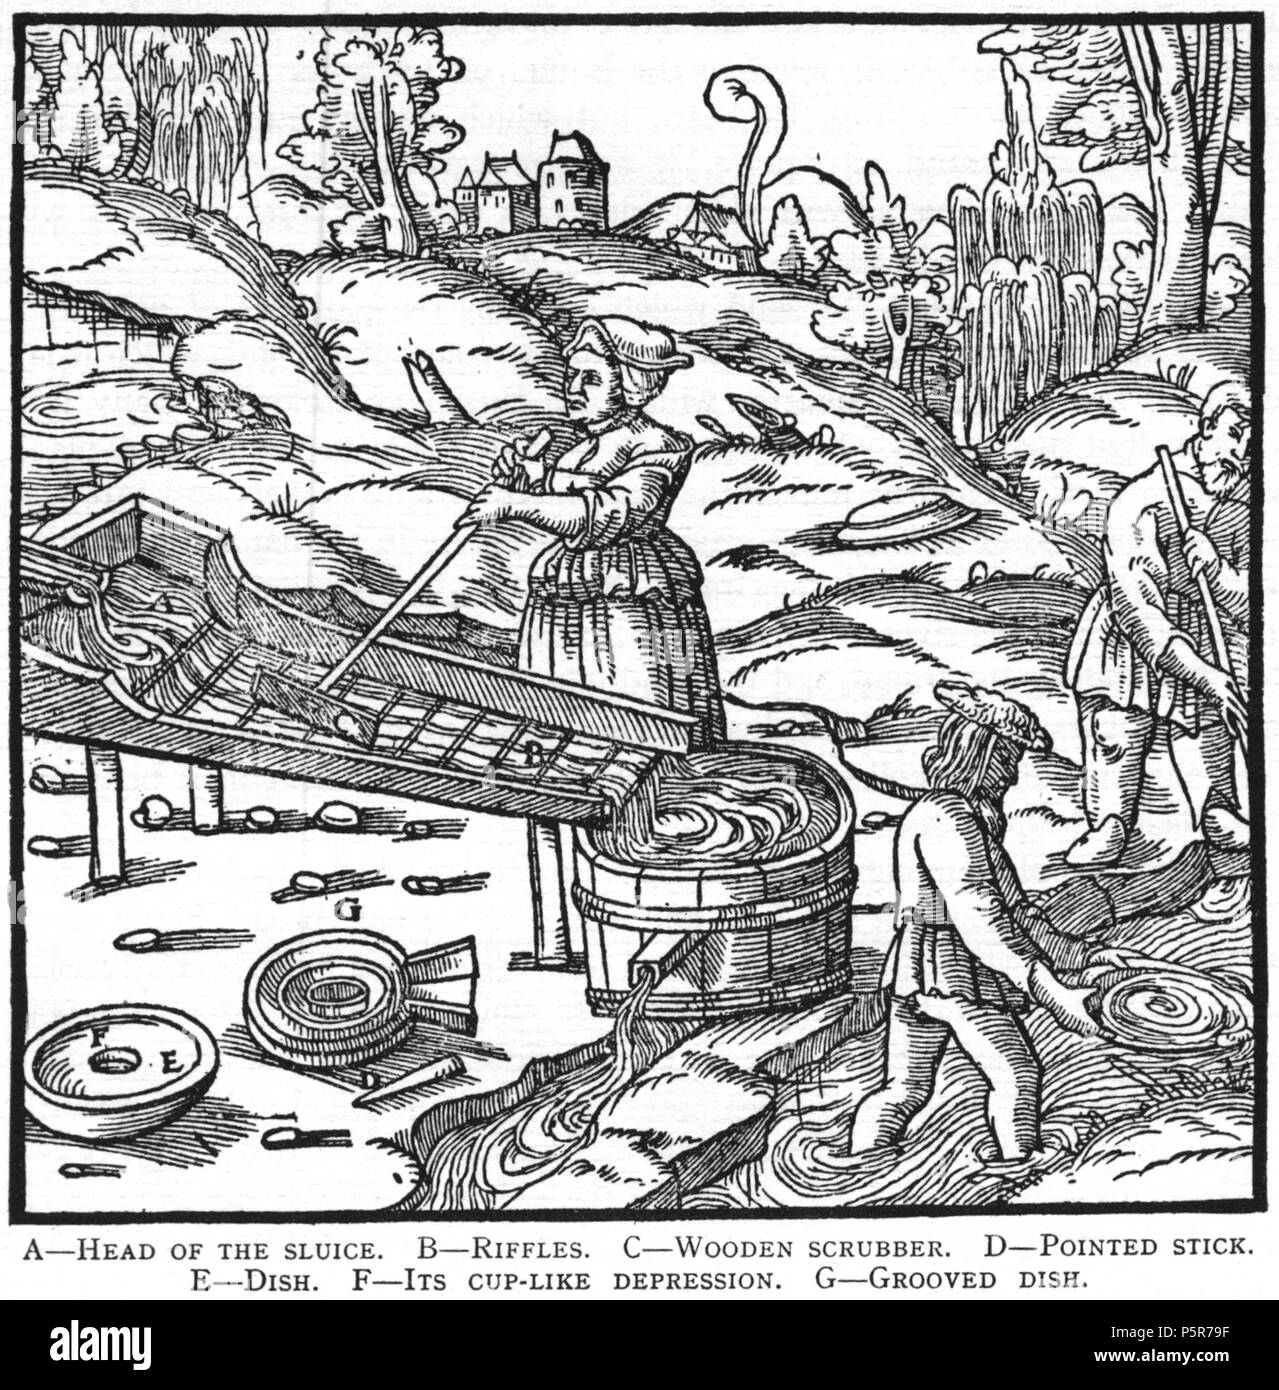 N/A. Woodcut illustration from De re metallica by Georgius Agricola. This is a 300dpi scan from the 1950 Dover edition of the 1913 Hoover translation of the 1556 reference. The Dover edition has slightly smaller size prints than the Hoover (which is a rare book). The woodcuts were recreated for the 1913 printing. Filenames (except for the title page) indicate the chapter (2, 3, 5, etc.) followed by the sequential number of the illustration. 2 May 2005, 07:13:18. TCO (talk) 223 Book8-42 - Stock Image